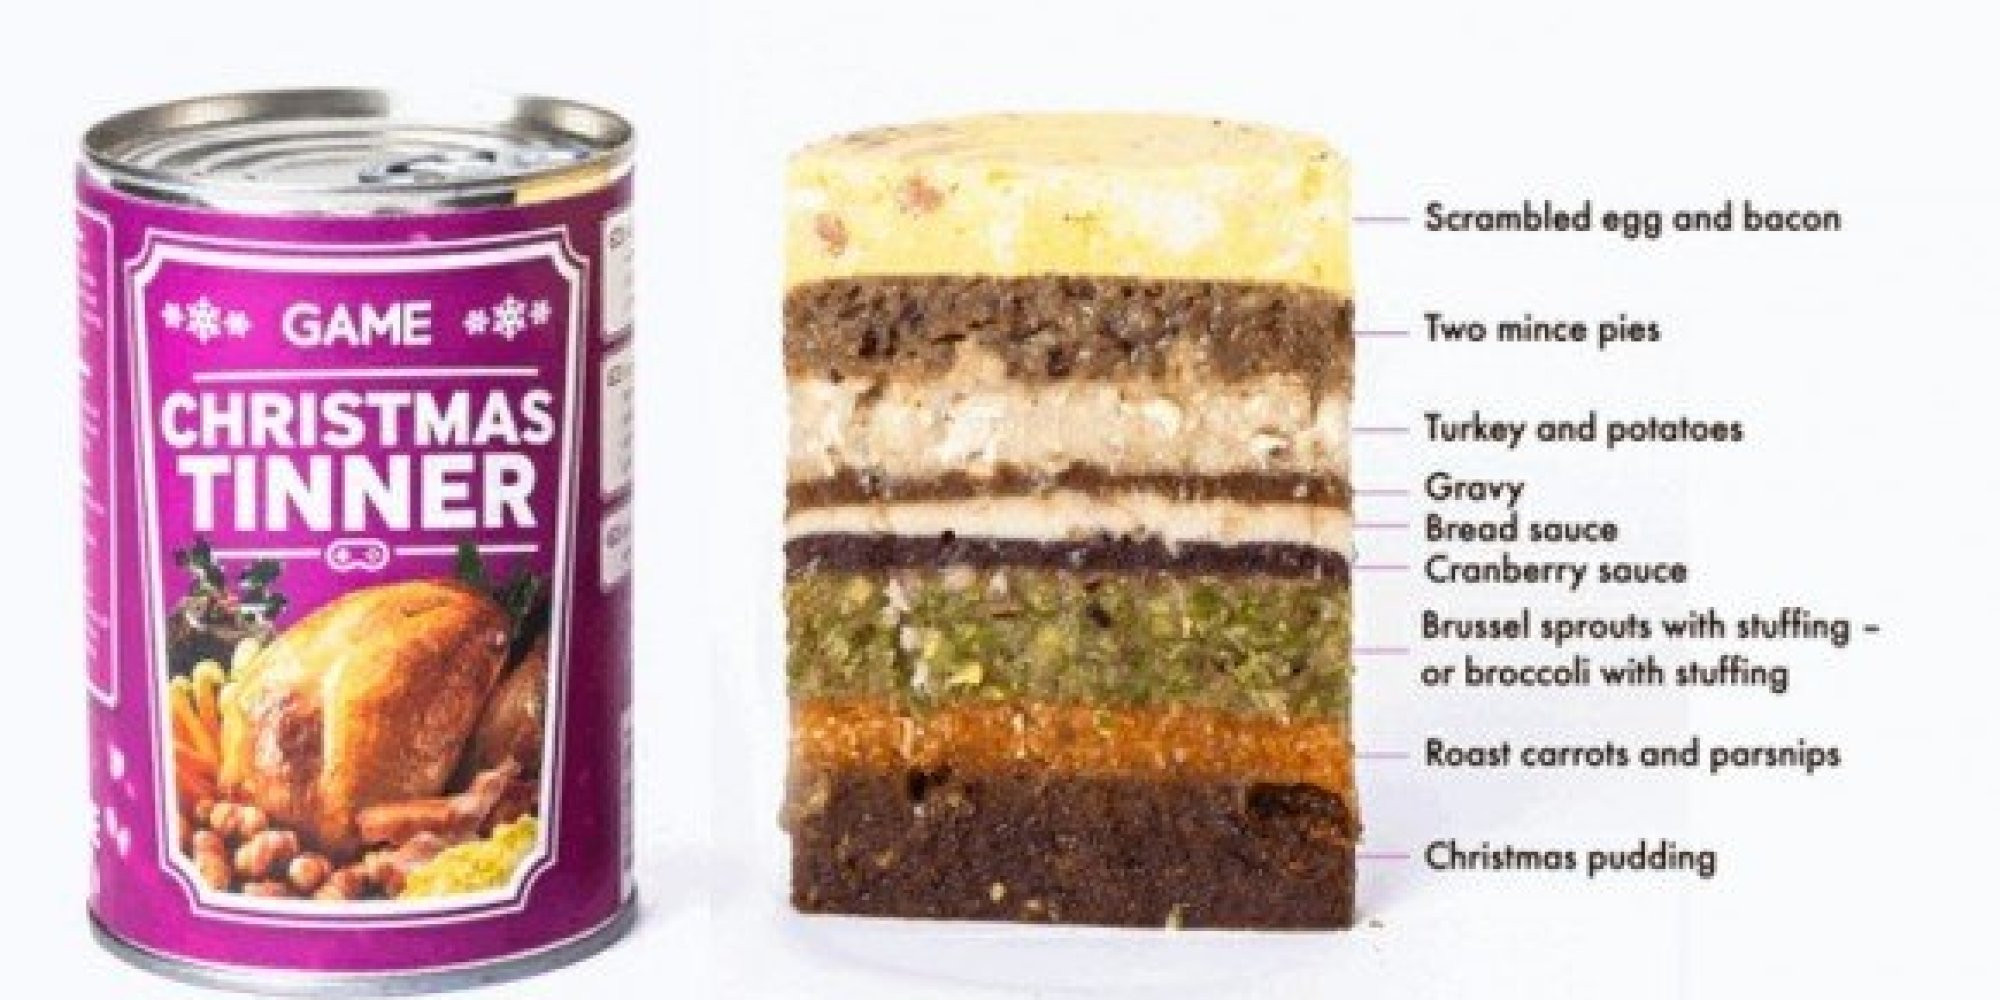 Craig'S Thanksgiving Dinner In A Can  The Christmas Tinner Is The Most Unappetizing Dinner